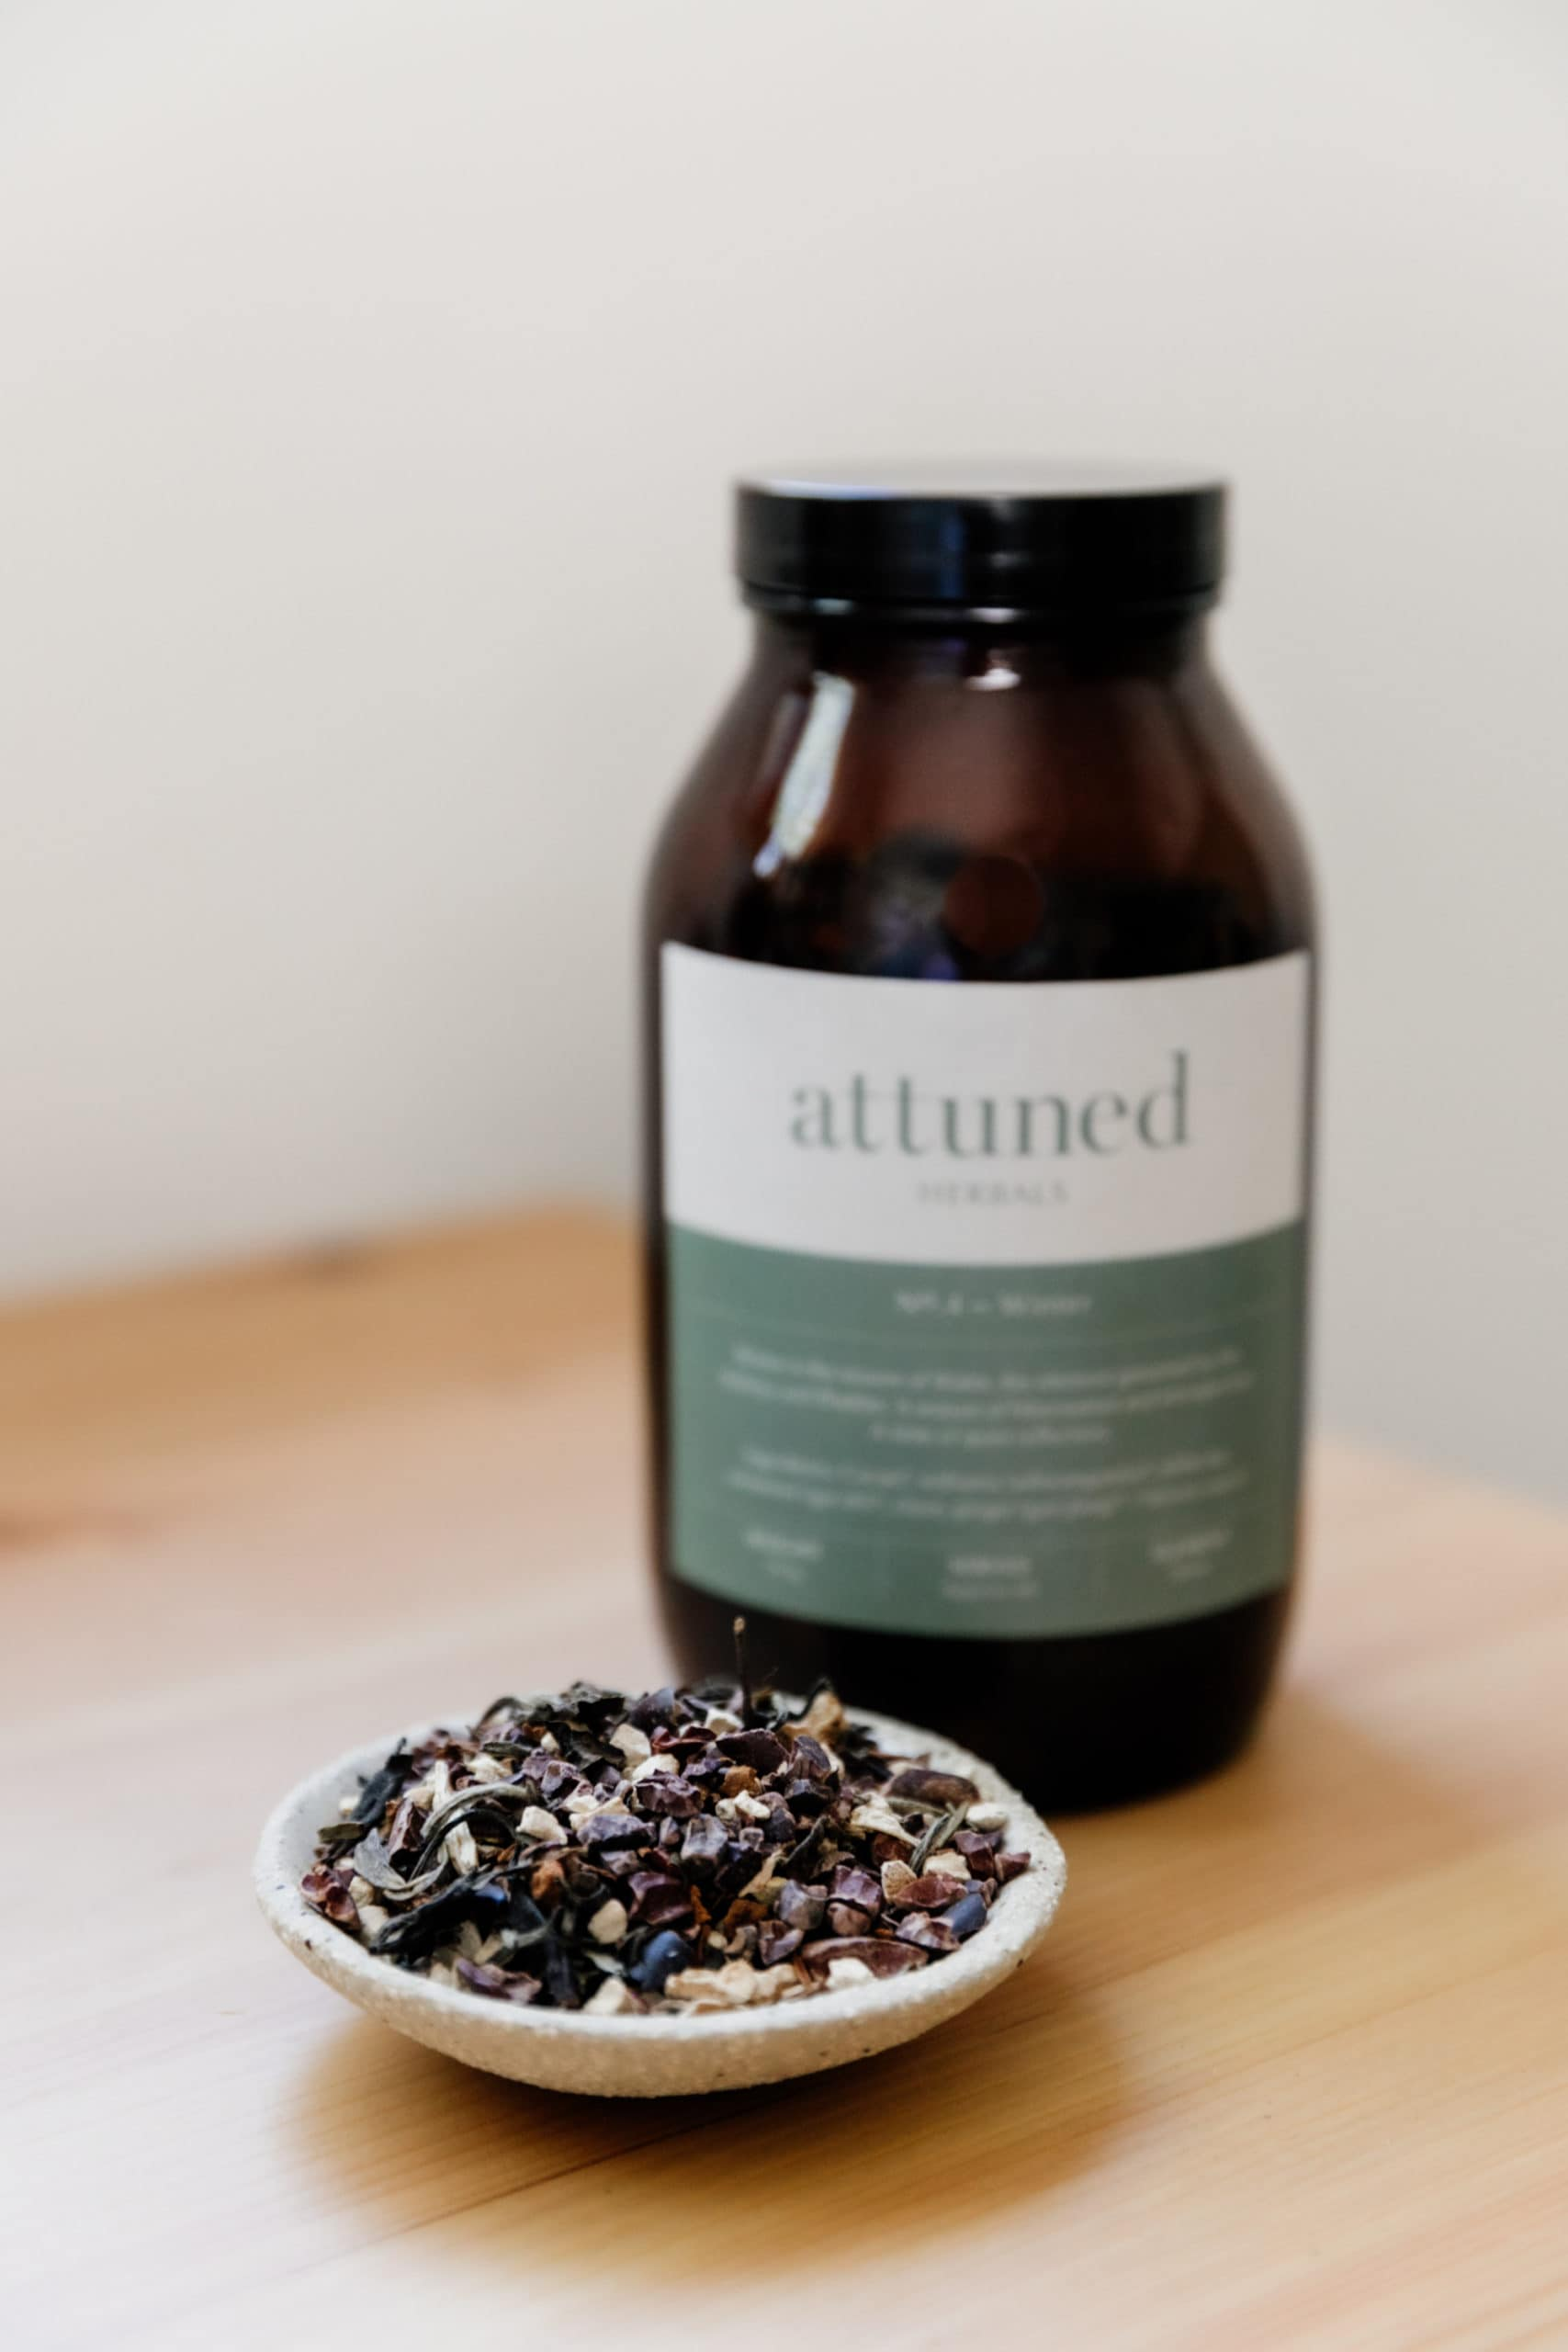 Attuned Herbals Brand Imagery 6